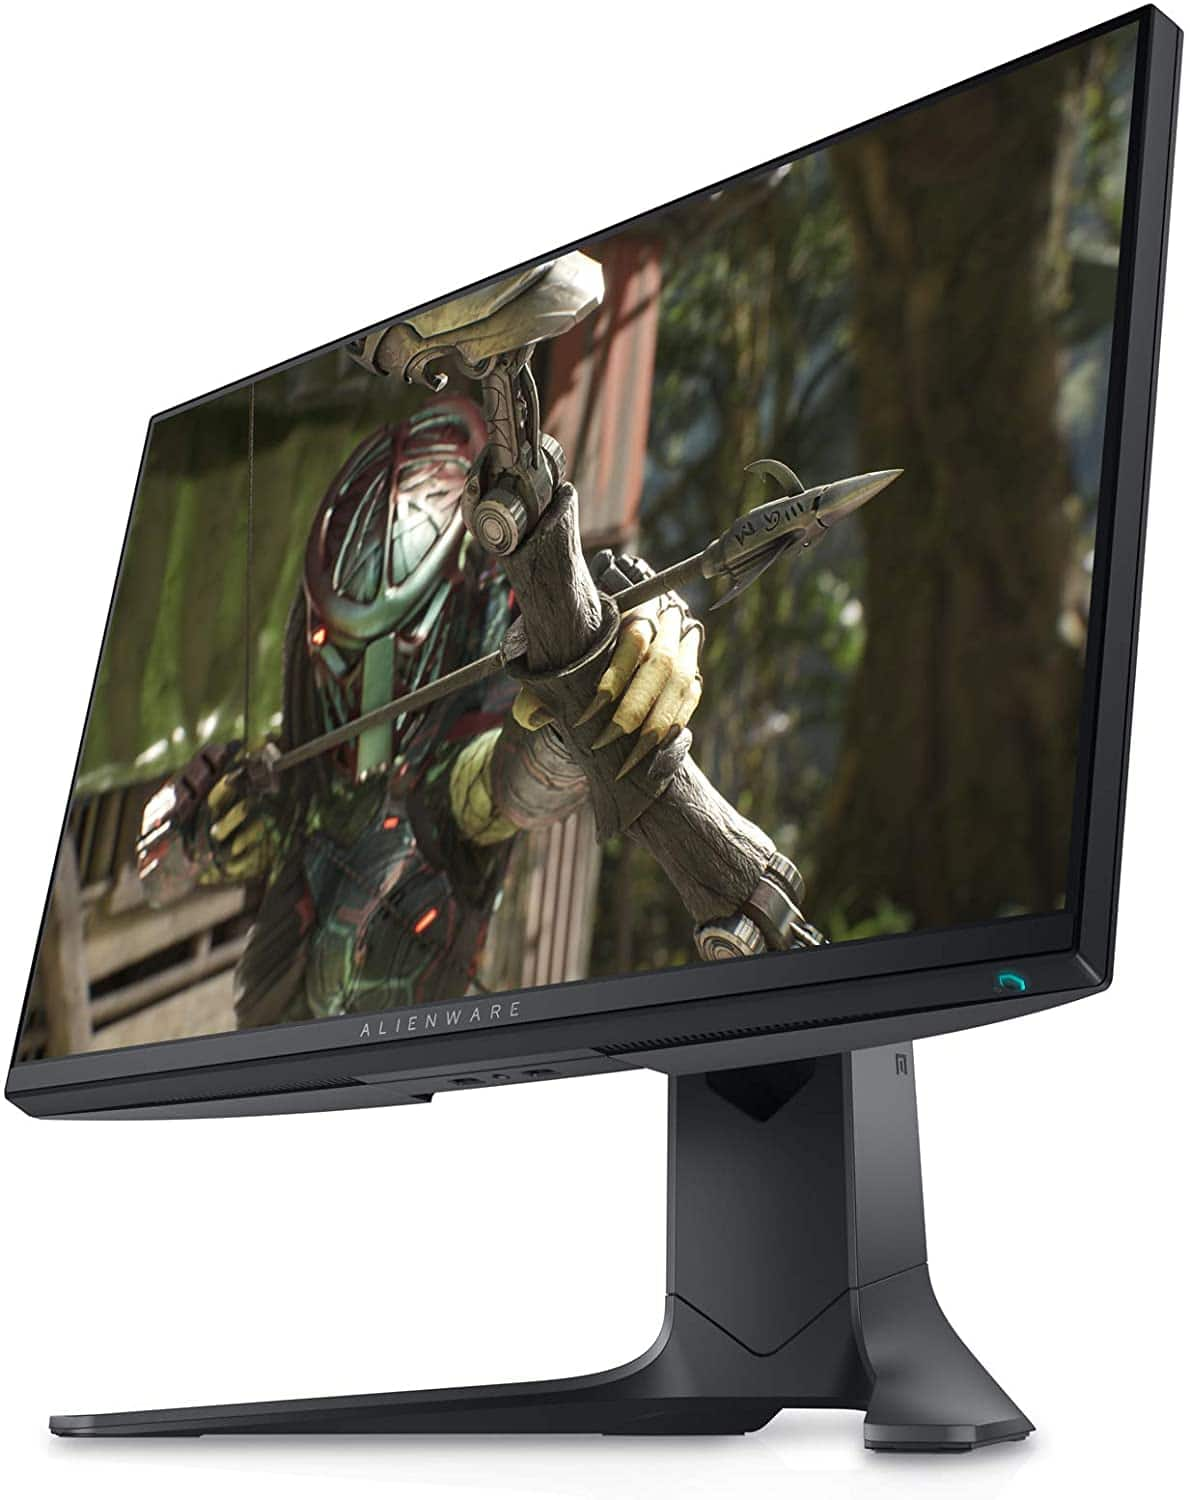 """Alienware AW2521HF 24.5"""" 1080p IPS Monitor - 240hz, 1ms, FreeSync Premium, G-Sync compatible (free shipping w/ Prime) $299.99"""